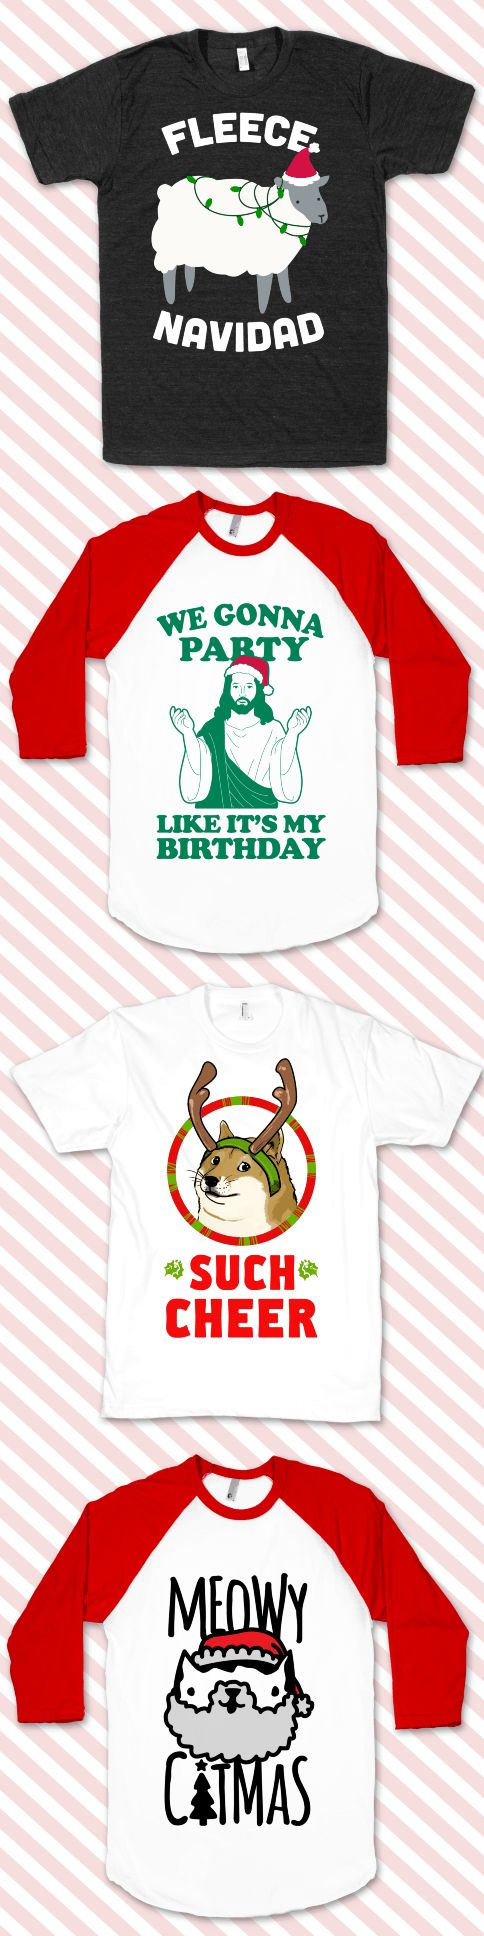 Xmas t shirt design - Celebrate Christmas Time With All Of These Funny Shirt Designs Perfect For Gifts This Season